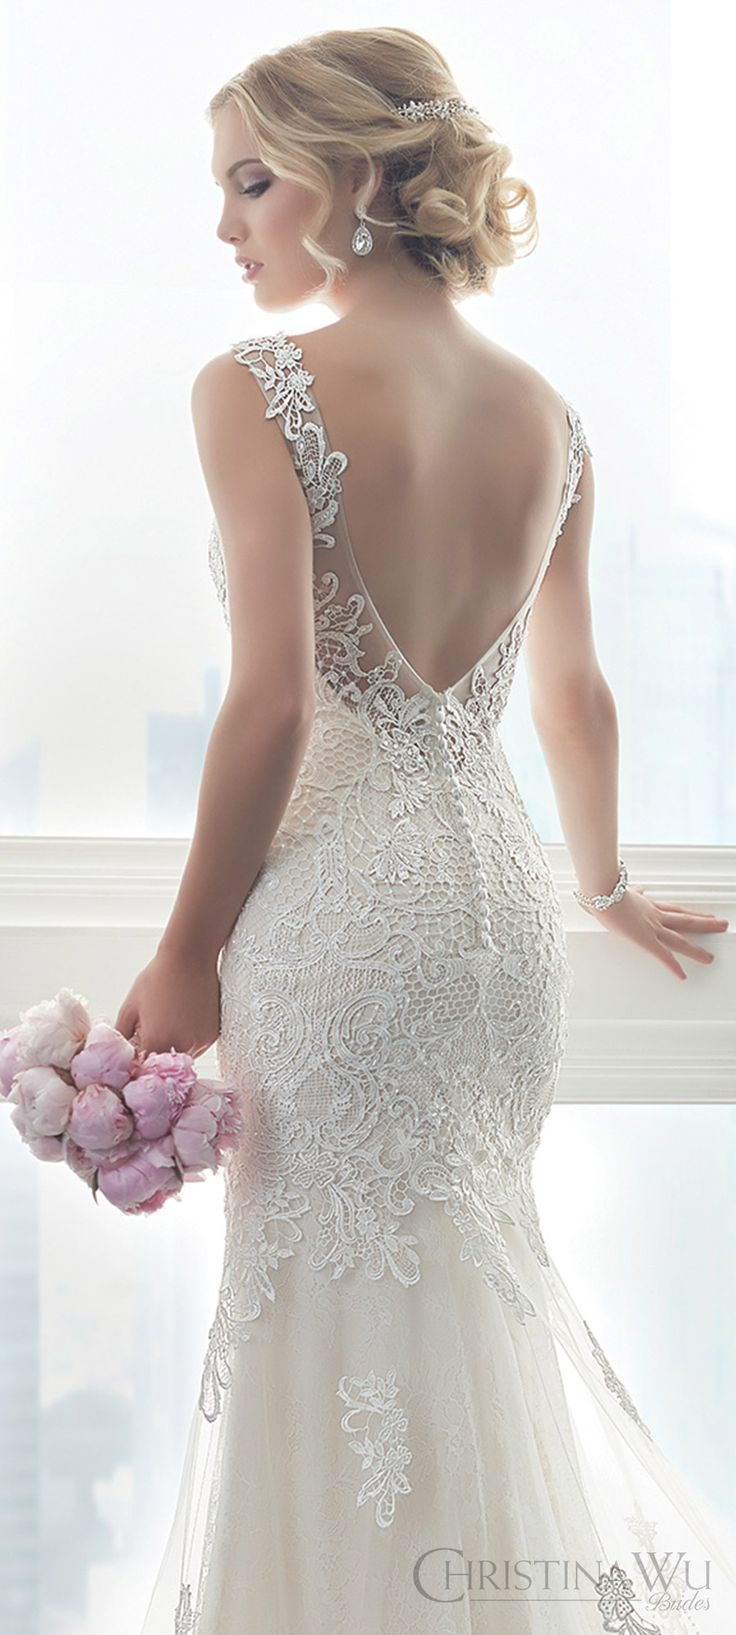 christina wu brides spring 2017 bridal sleeveless illusion straps vneck fully lace embellished trumpet wedding dress (15625) zbv train romantic elegant -- Christina Wu Spring 2017 Bridal Trends That Will Make You Swoon!